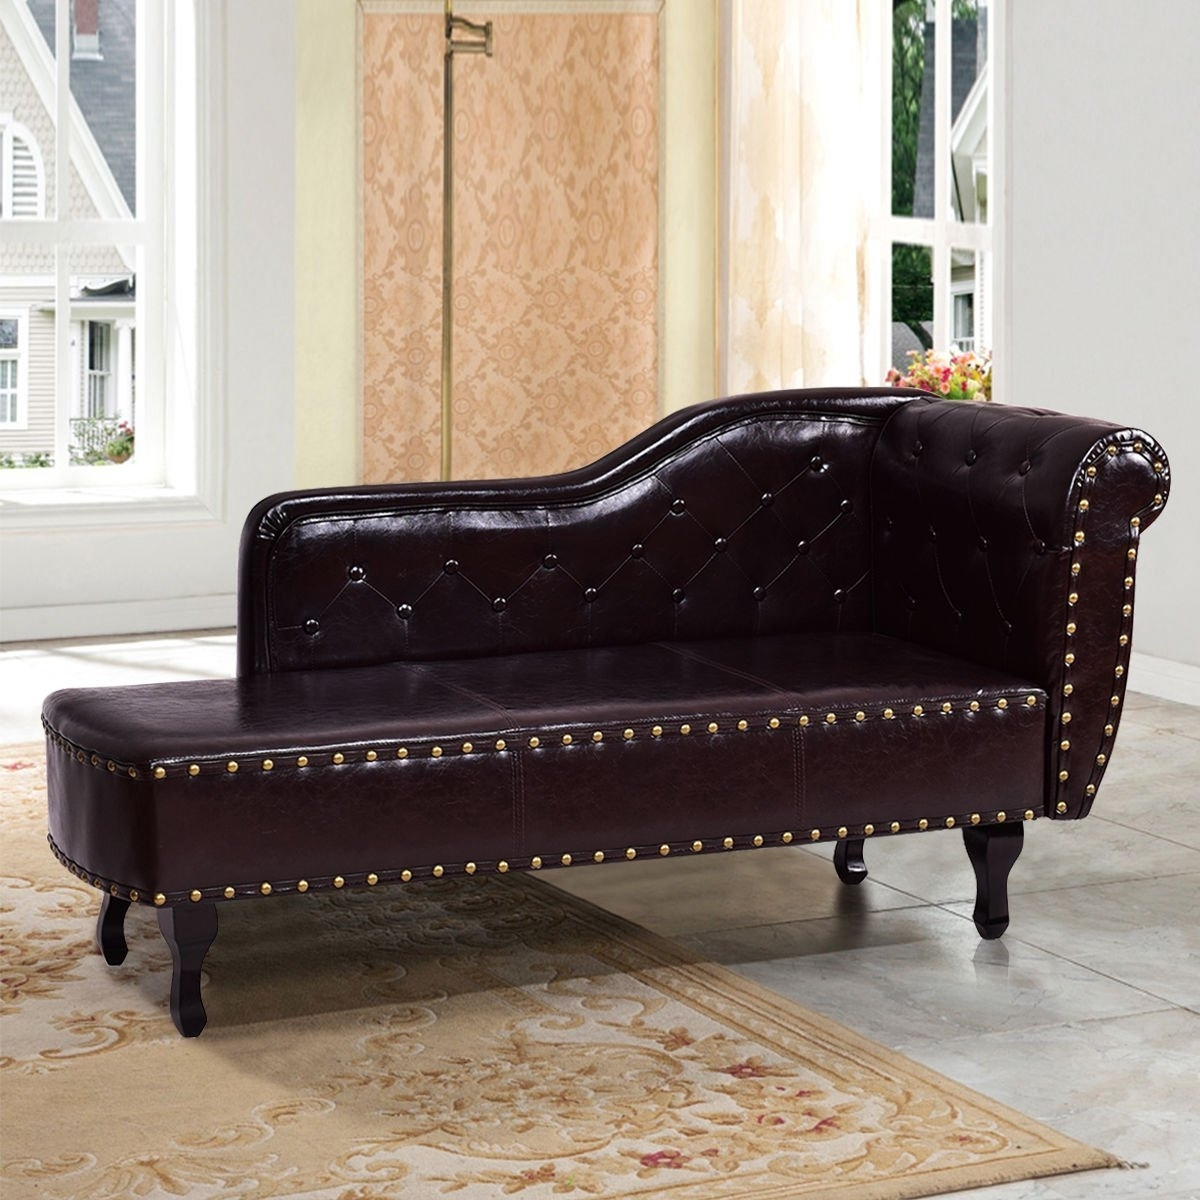 Amazon: Black Storage Chaise Lounge Sofa Chair Couch For Your Throughout Fashionable Couch Chaise Lounges (View 8 of 15)